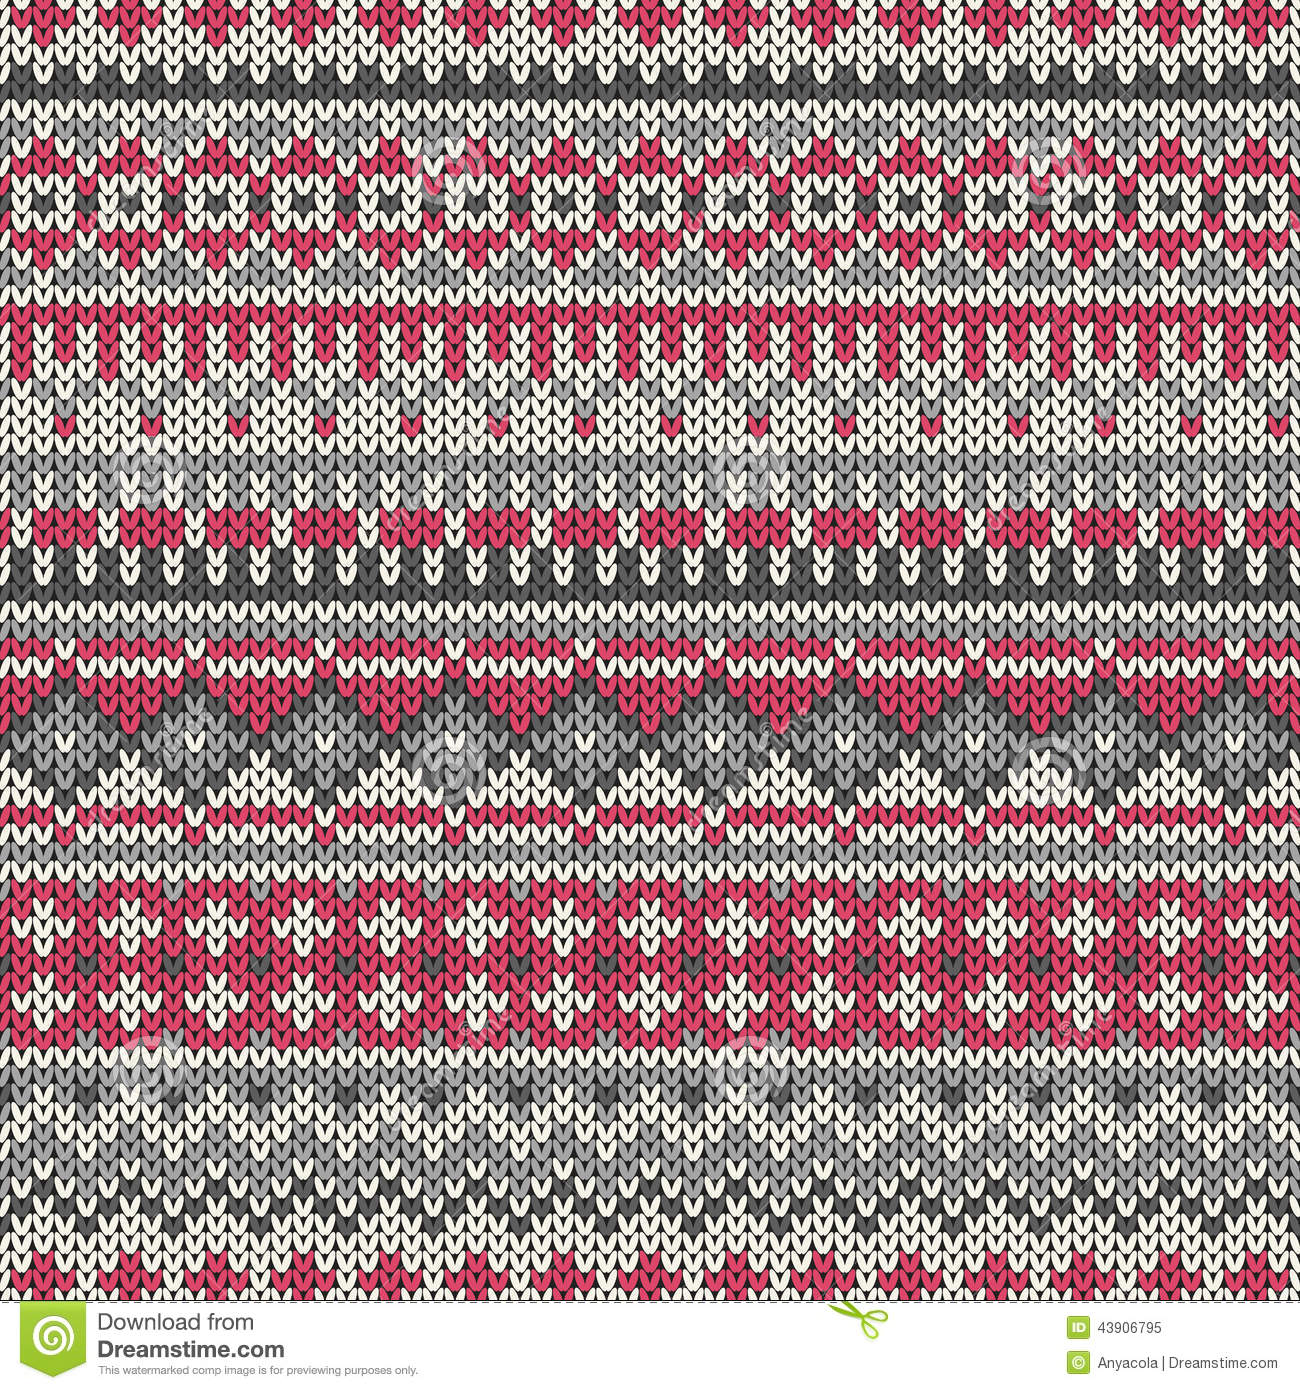 Awesome Easy Fair Isle Knitting Patterns Crest - Blanket Knitting ...